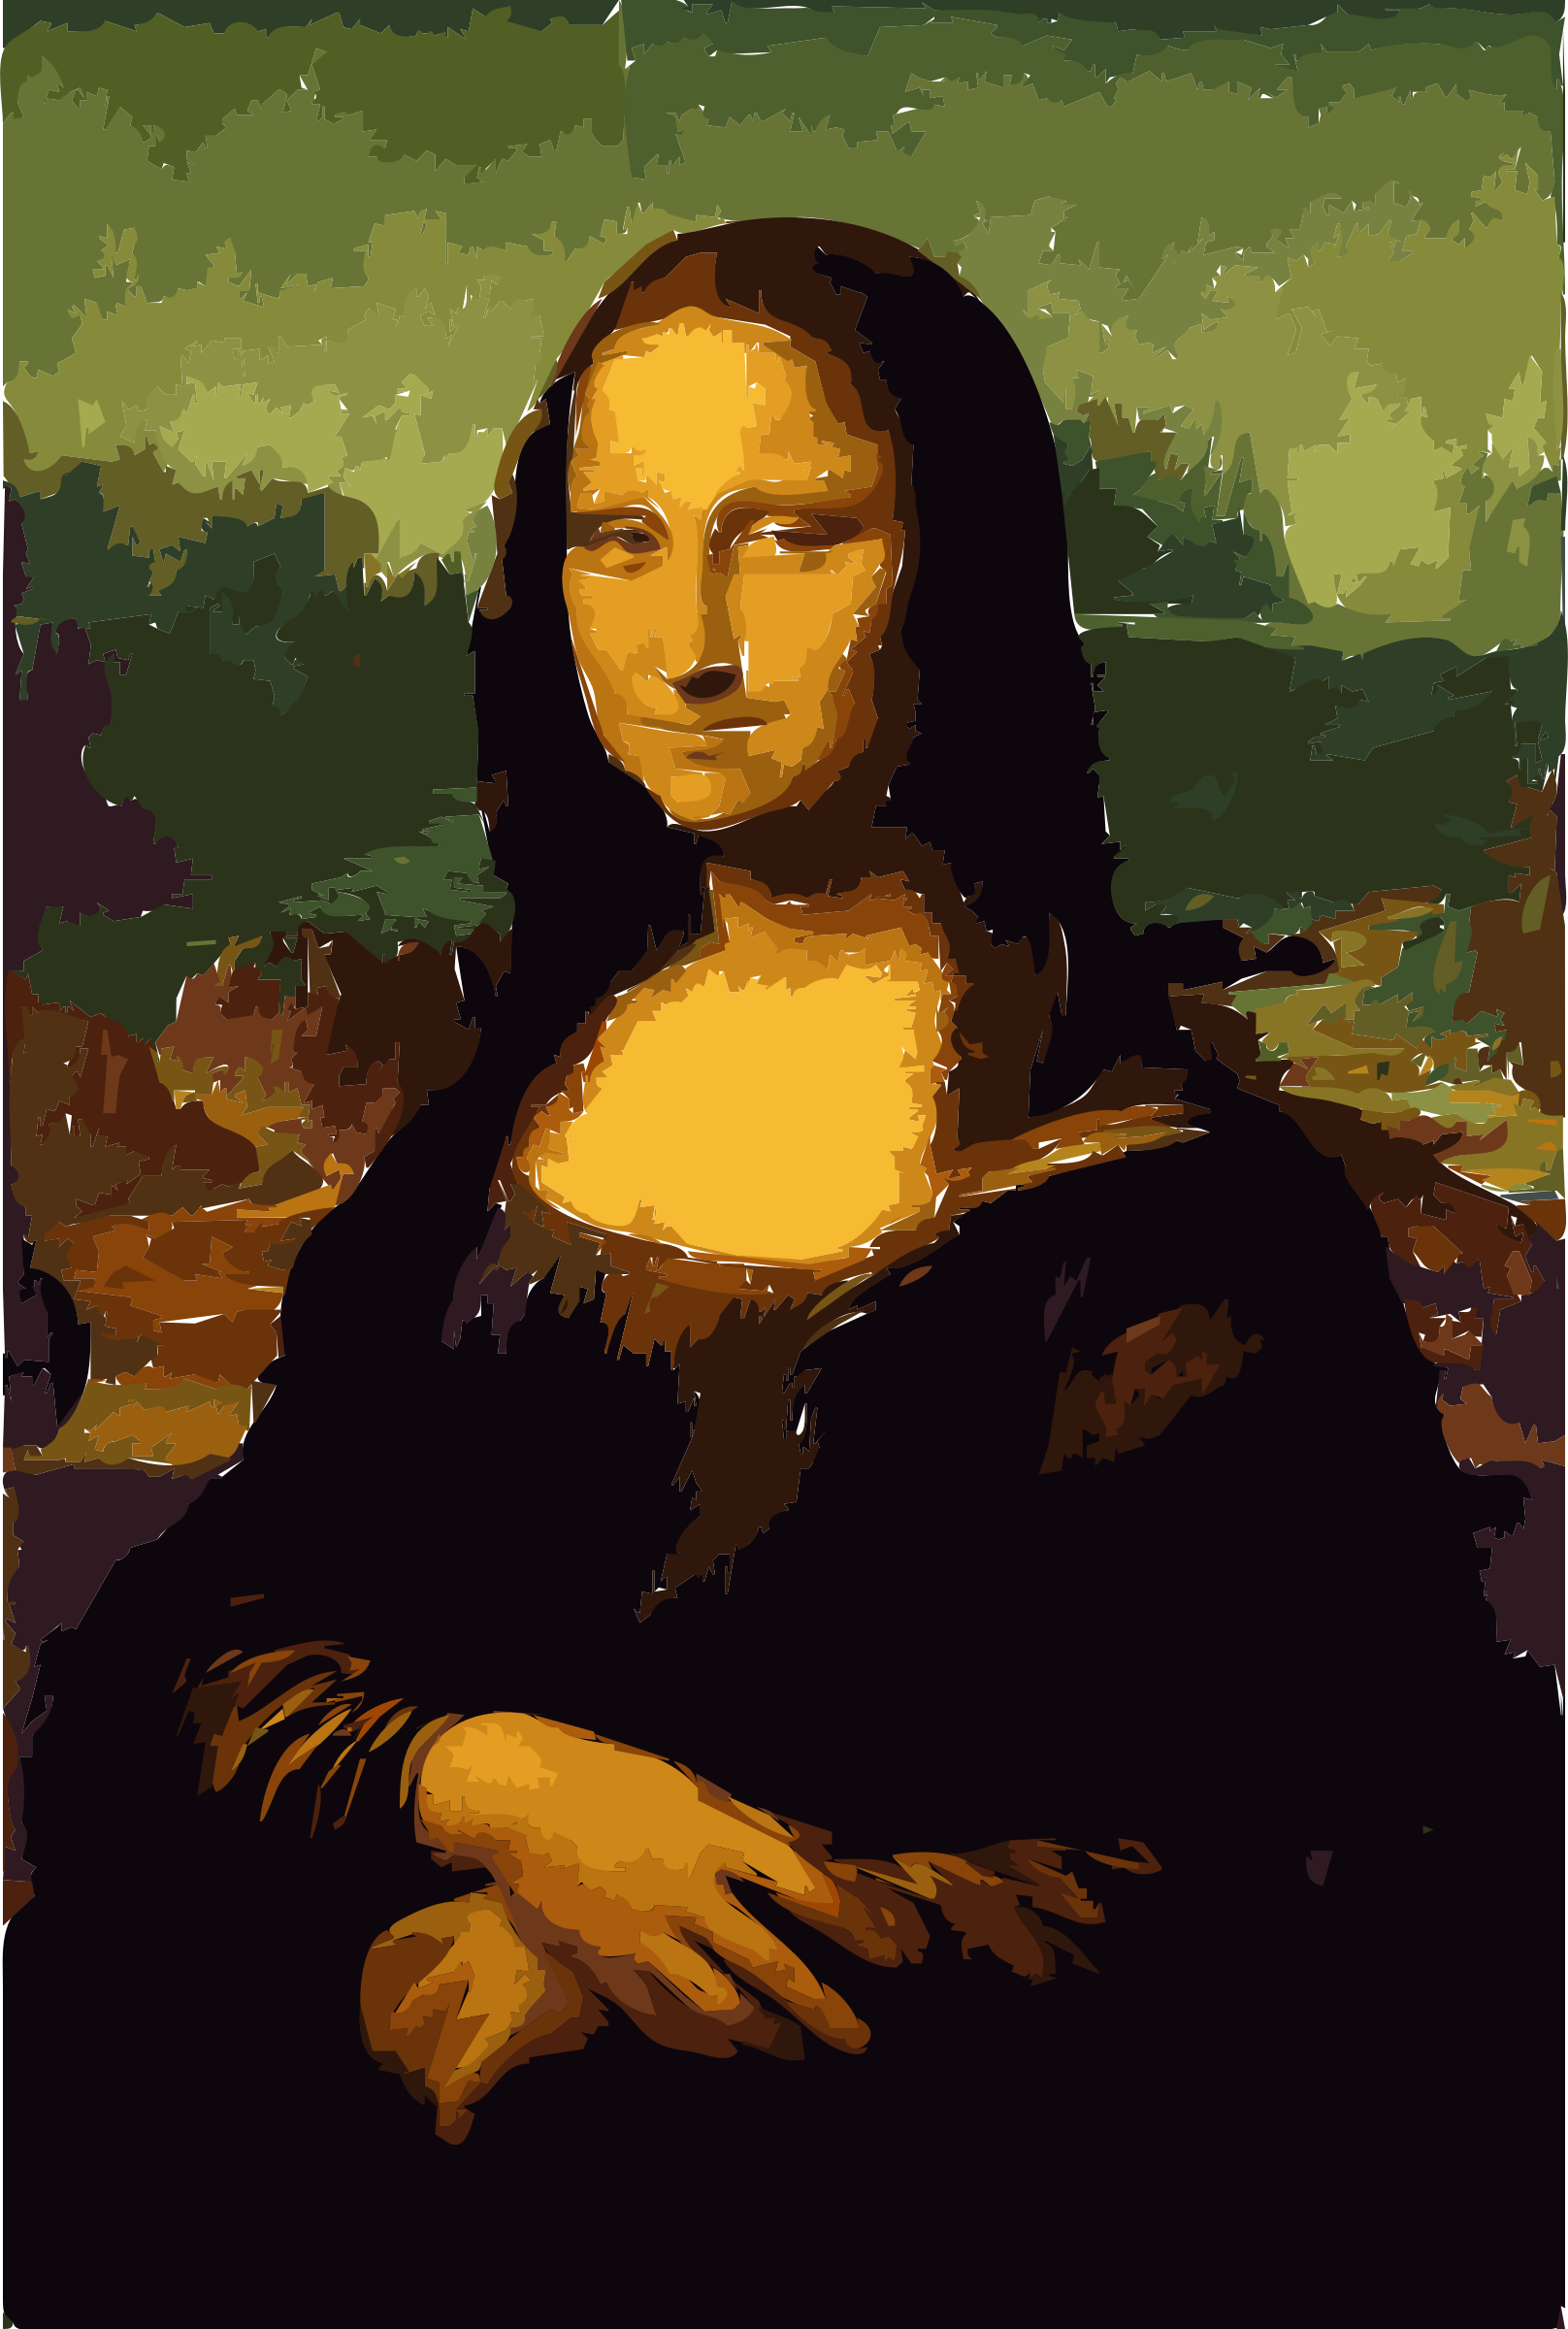 Clipart - Here is another New Mona Lisa Painting